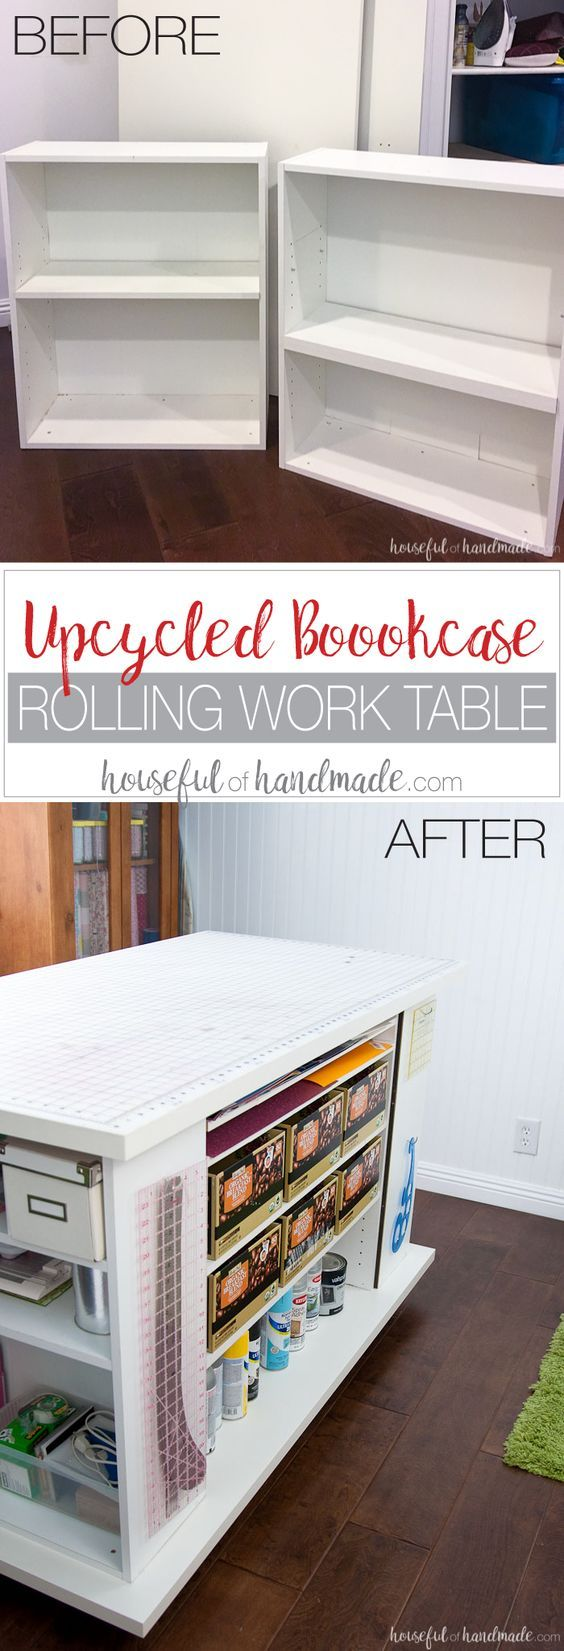 Upcycled Bookcase Rolling Work Table -   21 crafts table